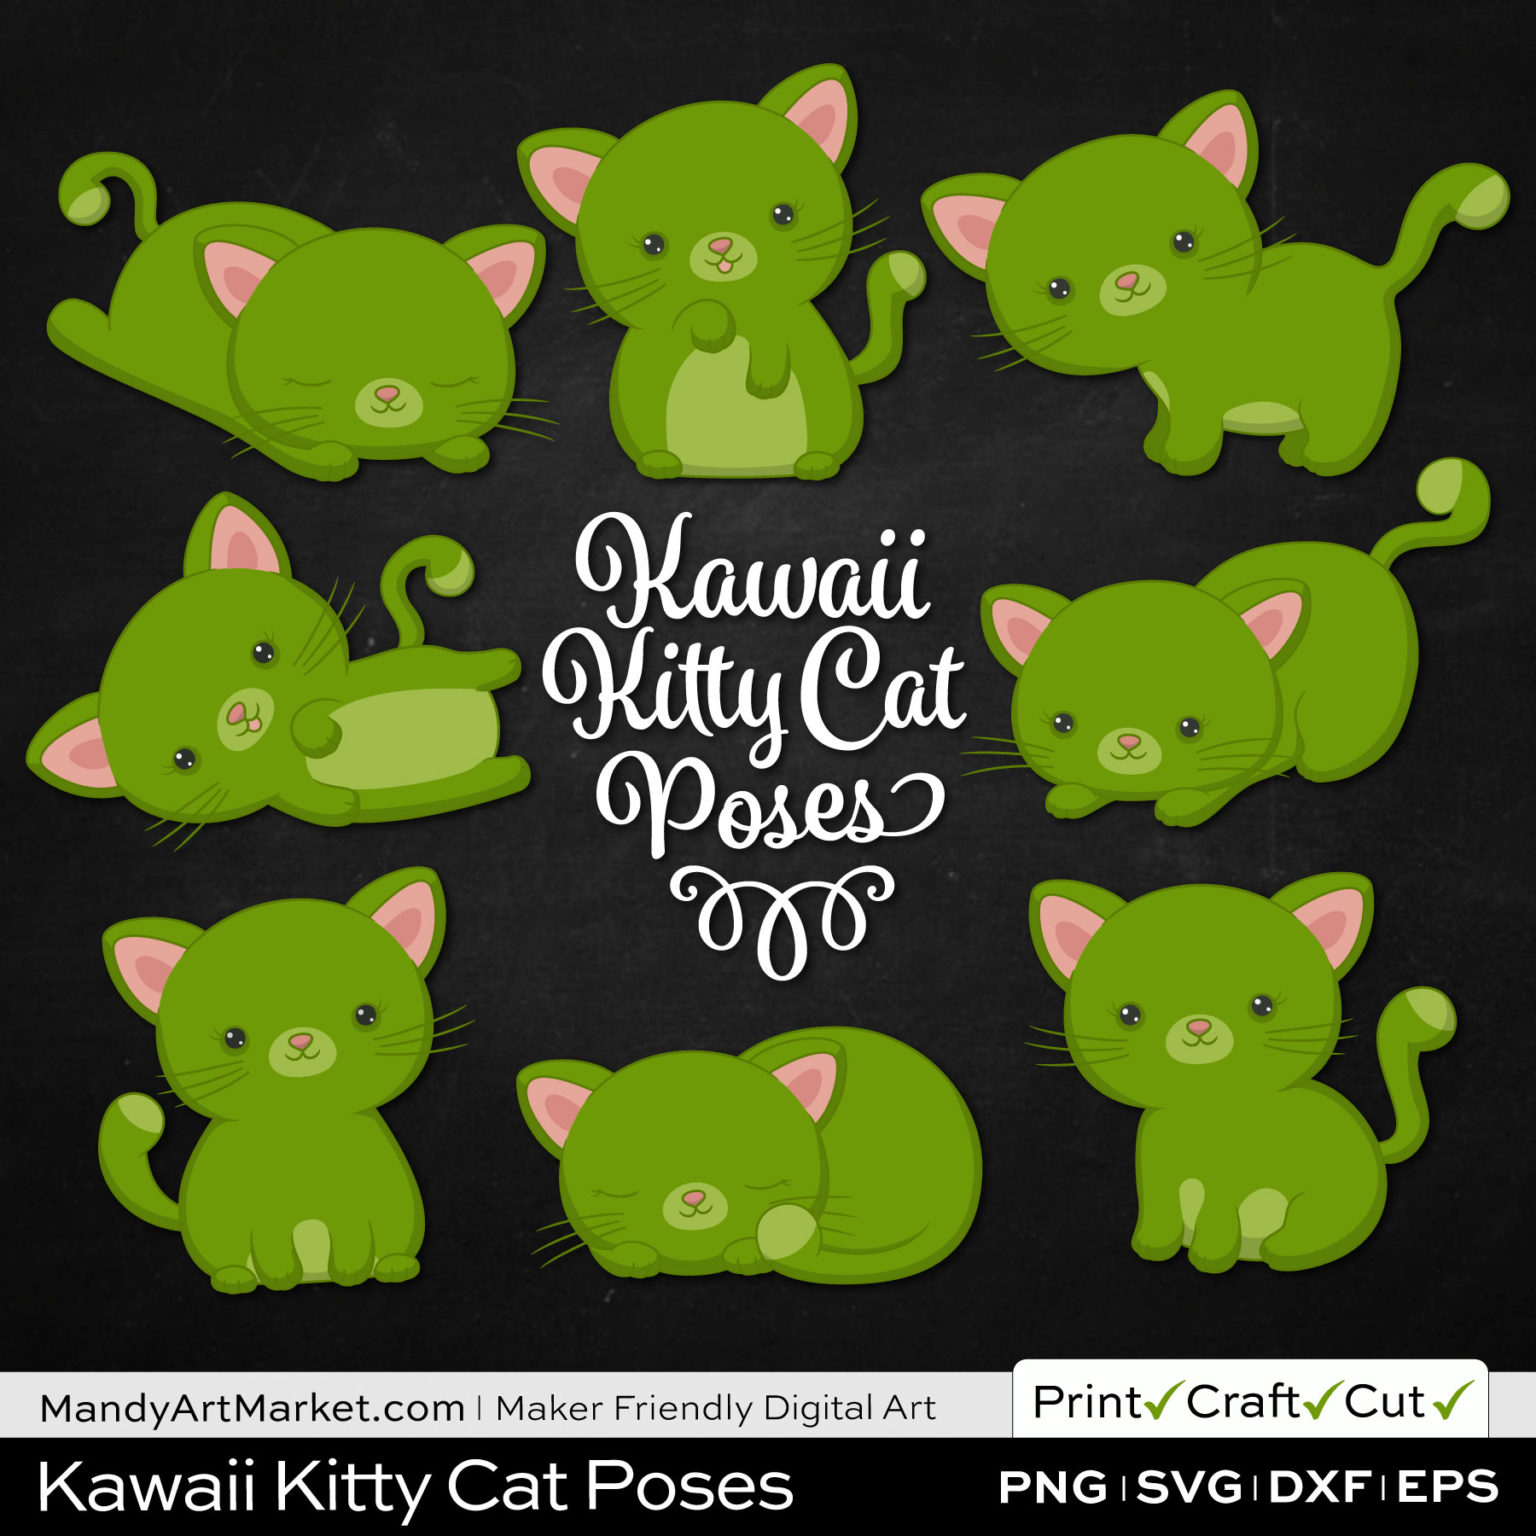 Bamboo Green Kawaii Kitty Cat Poses Clipart on Black Background